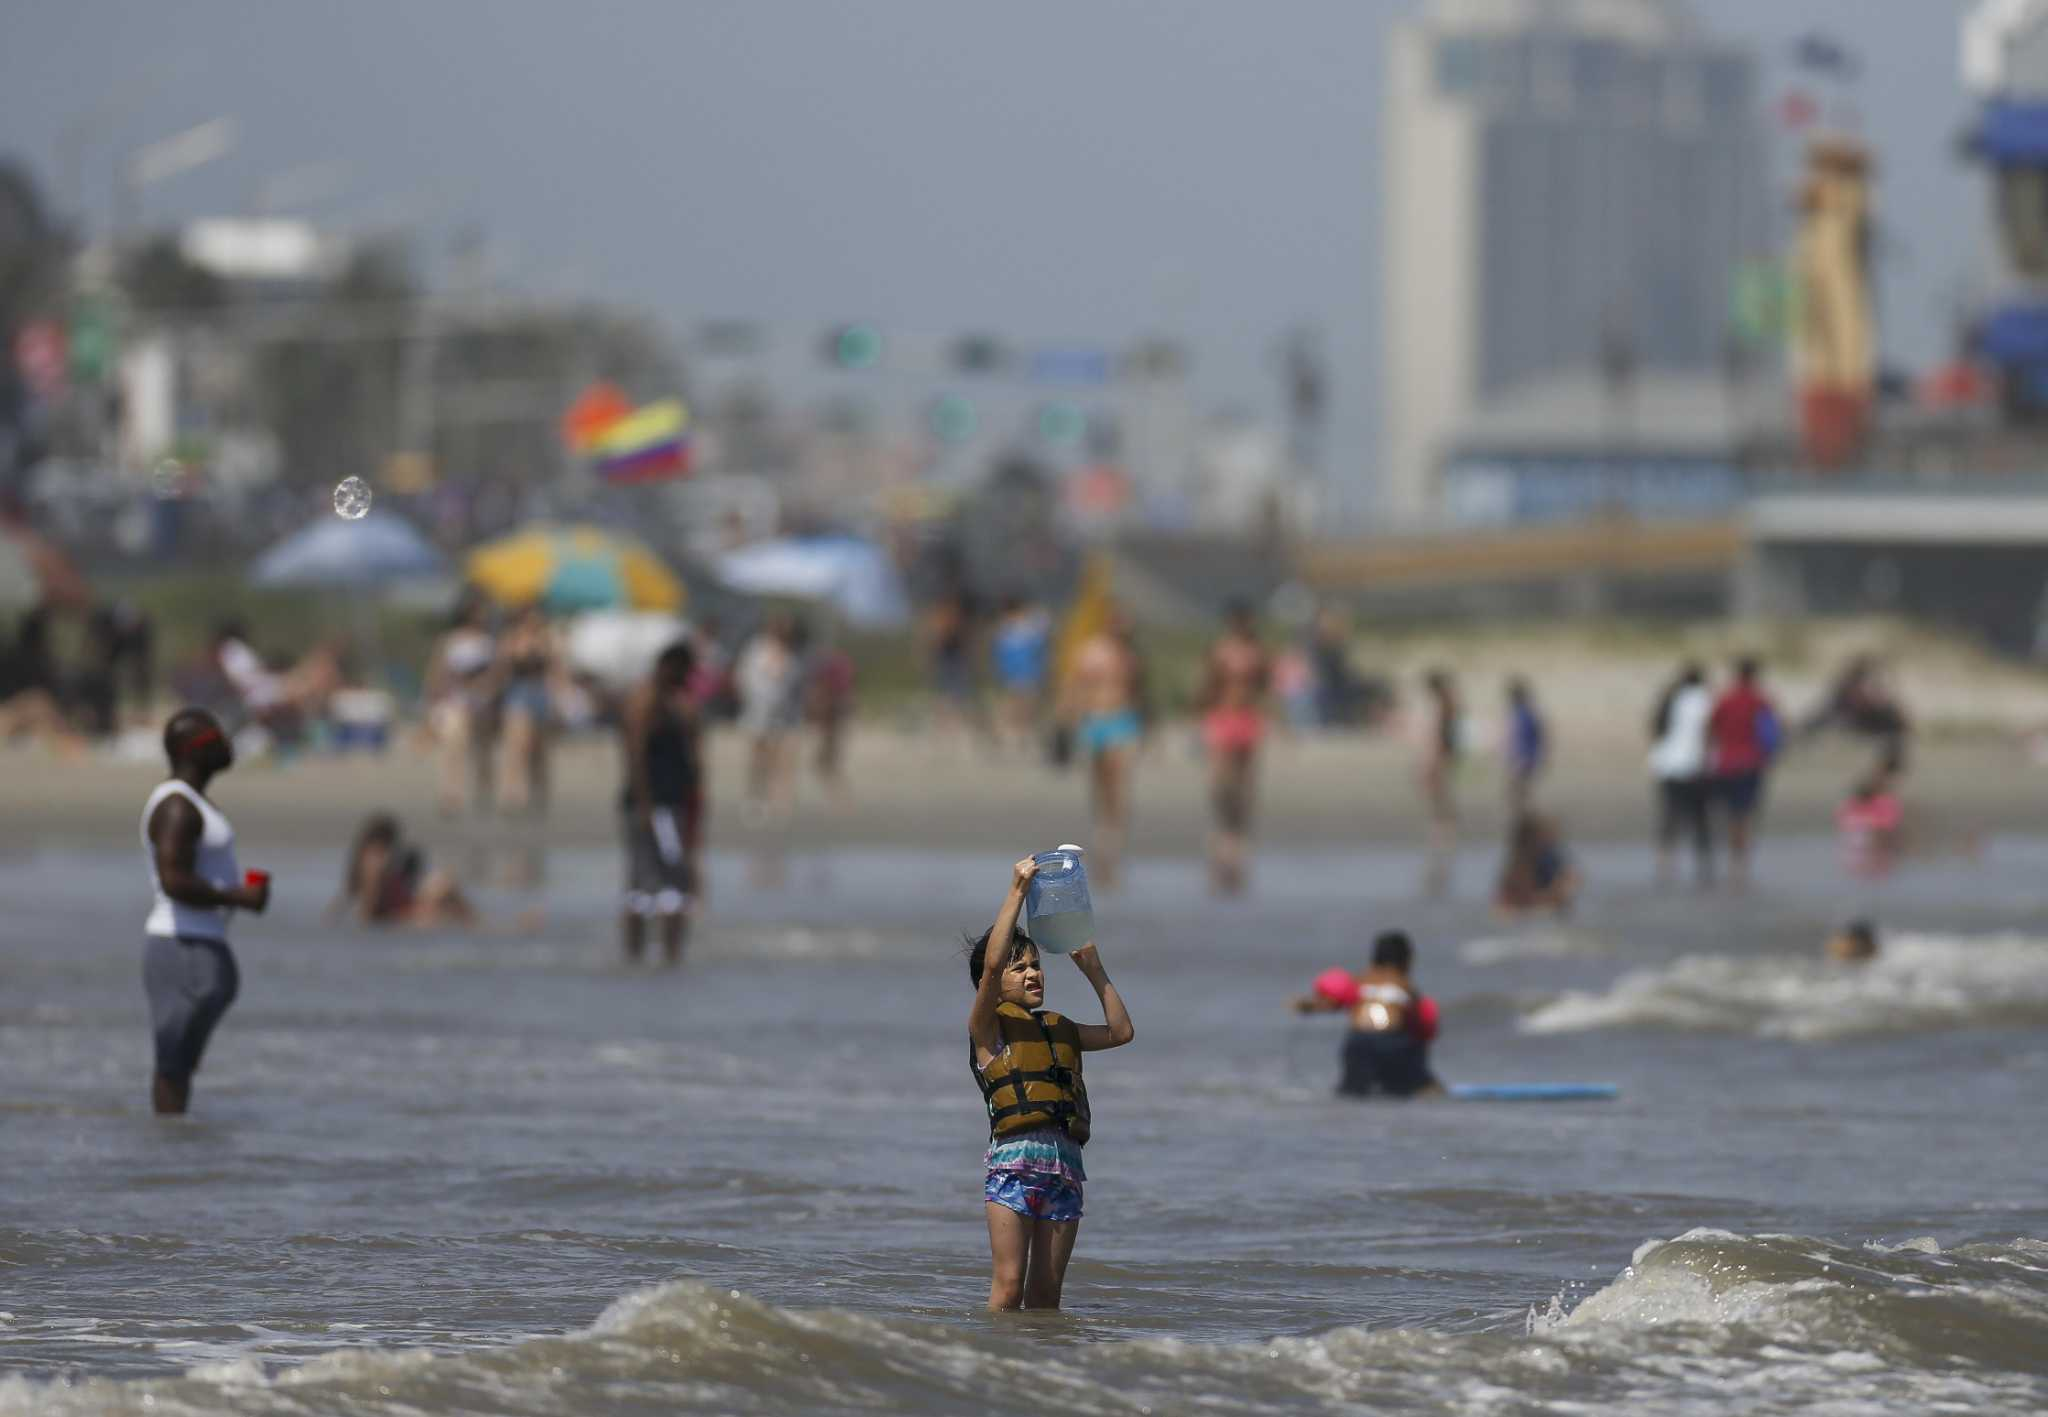 As Texans swarm beaches during COVID, so too does fecal bacteria